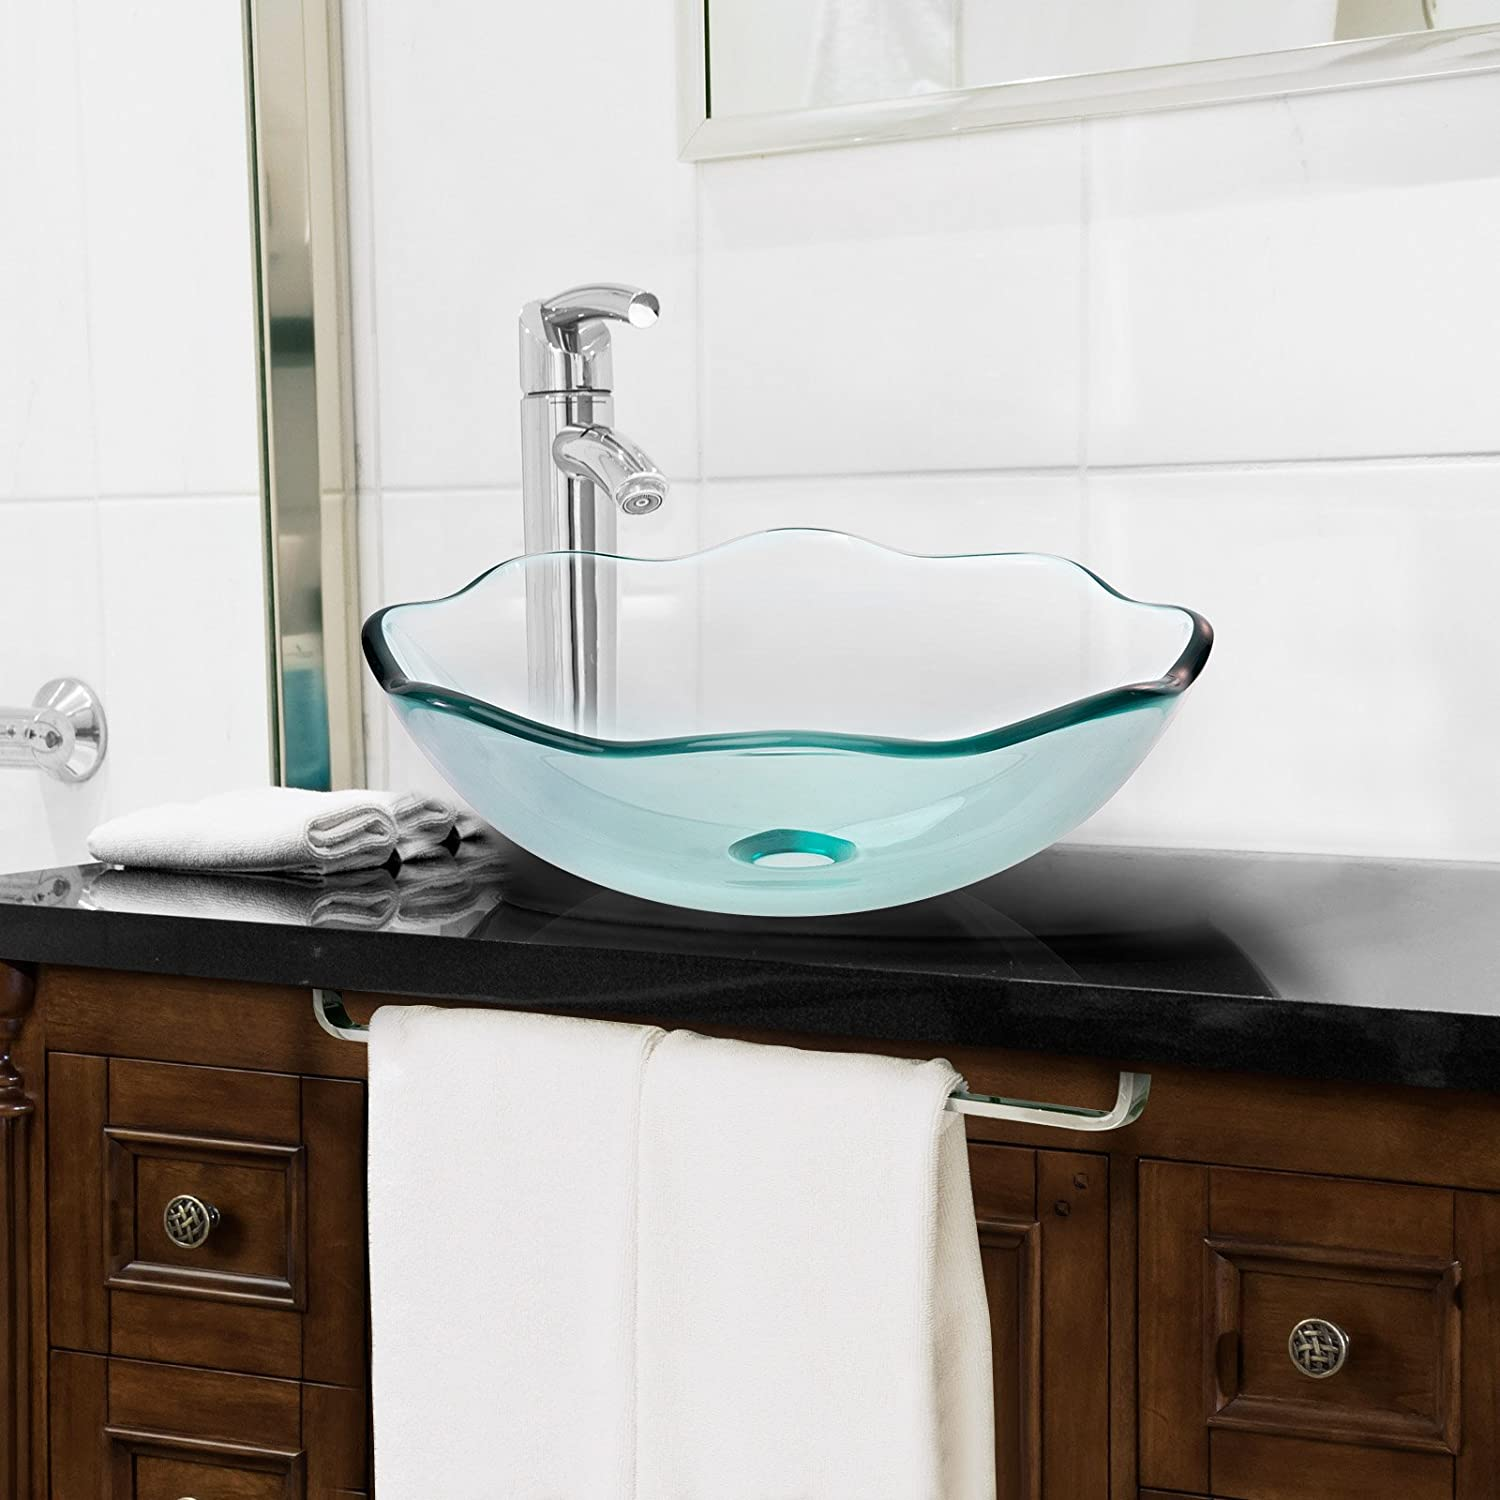 Awesome Miligoré Modern Glass Vessel Sink   Above Counter Bathroom Vanity Basin Bowl    Scalloped Clear     Amazon.com